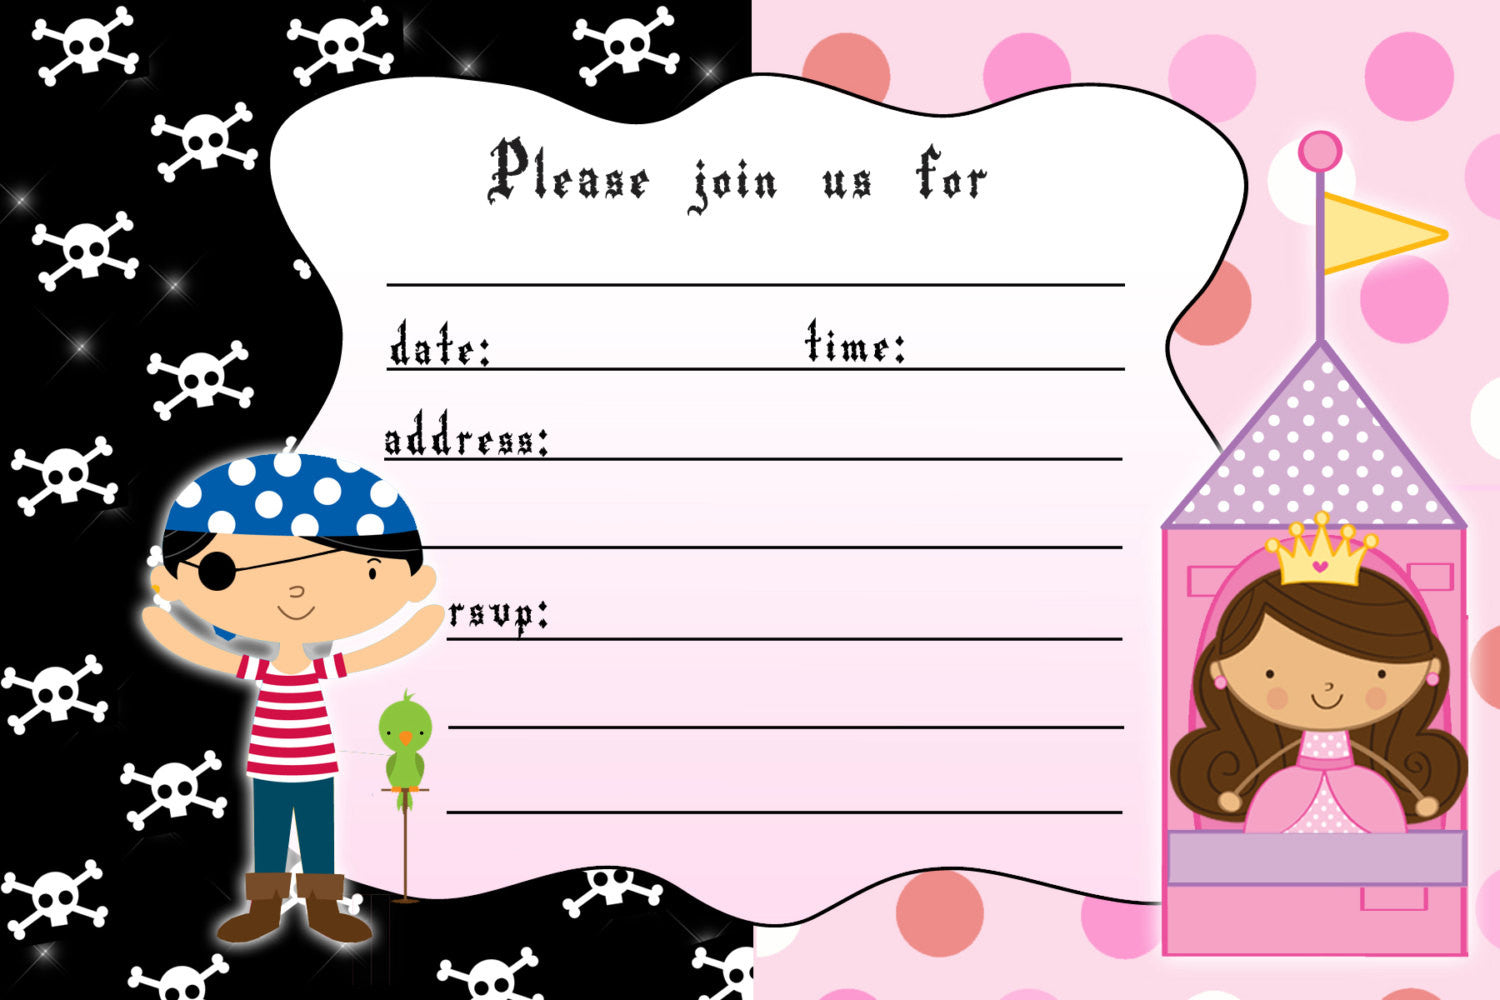 Pirate Princess Invitation Fill In the Blanks Kids Birthday ...